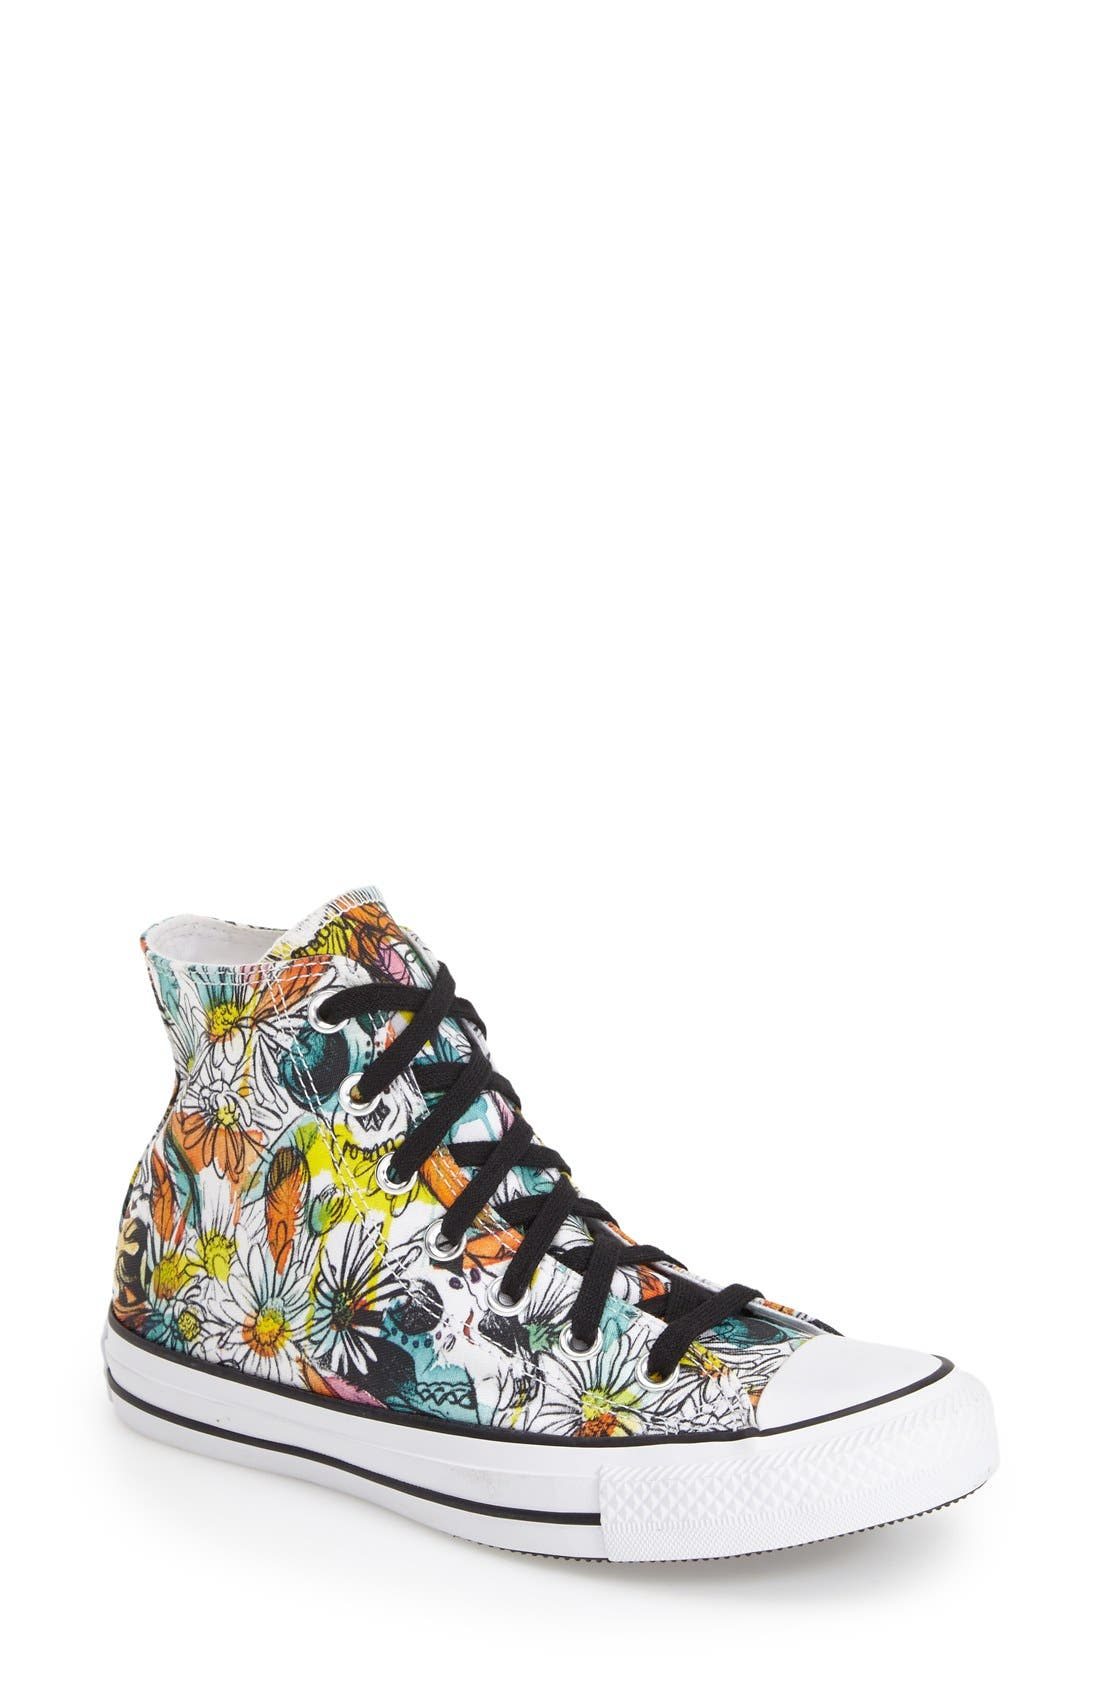 Alternate Image 1 Selected - Converse Chuck Taylor® All Star® 'Floral' High Top Sneaker (Women)